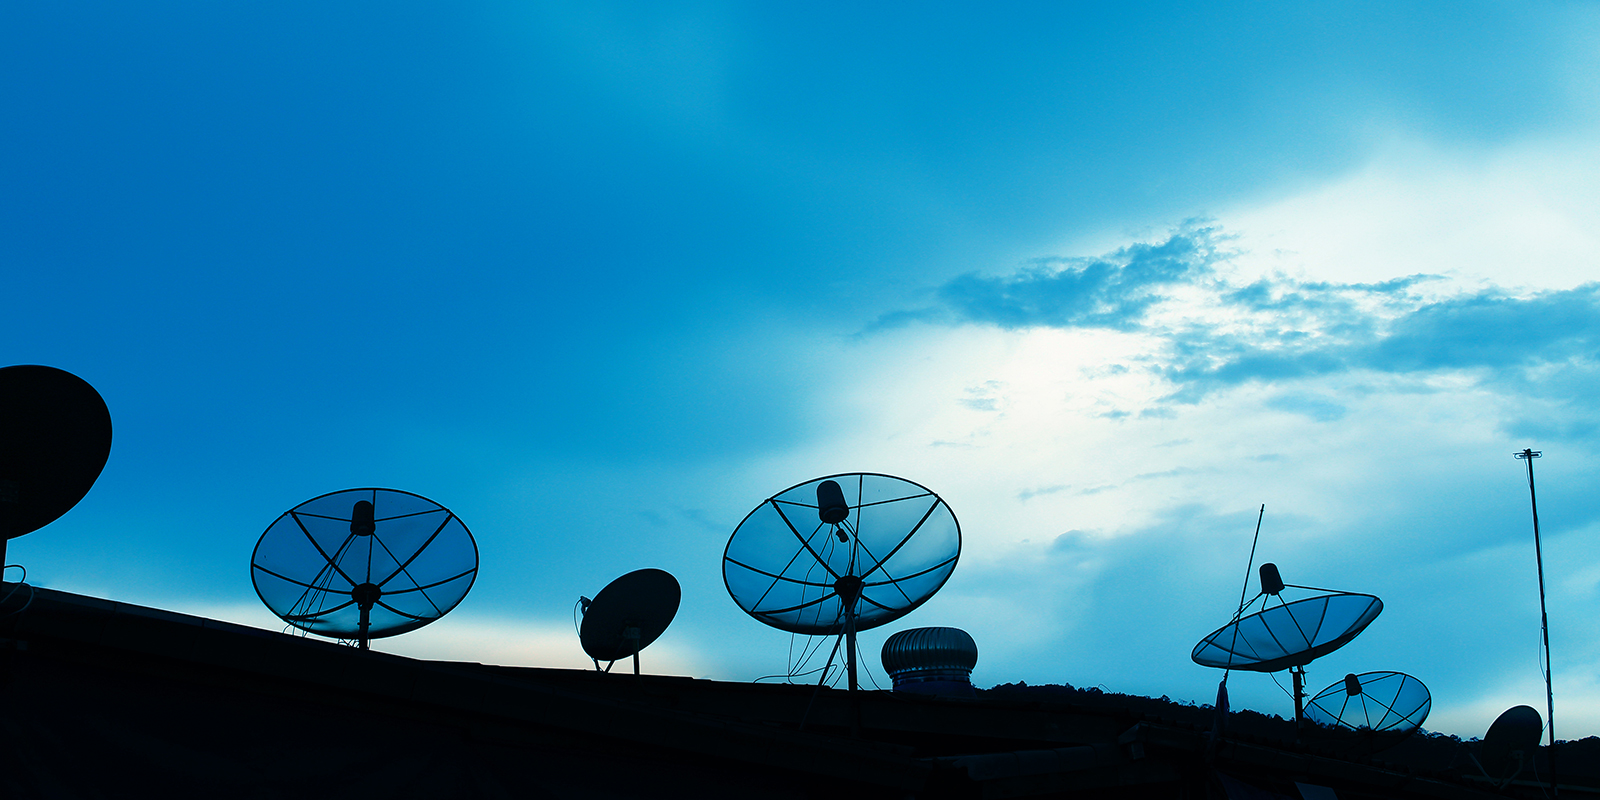 A picture of a blue sky with satellite disks on a dark surface at the bottom on the science PR agency page.